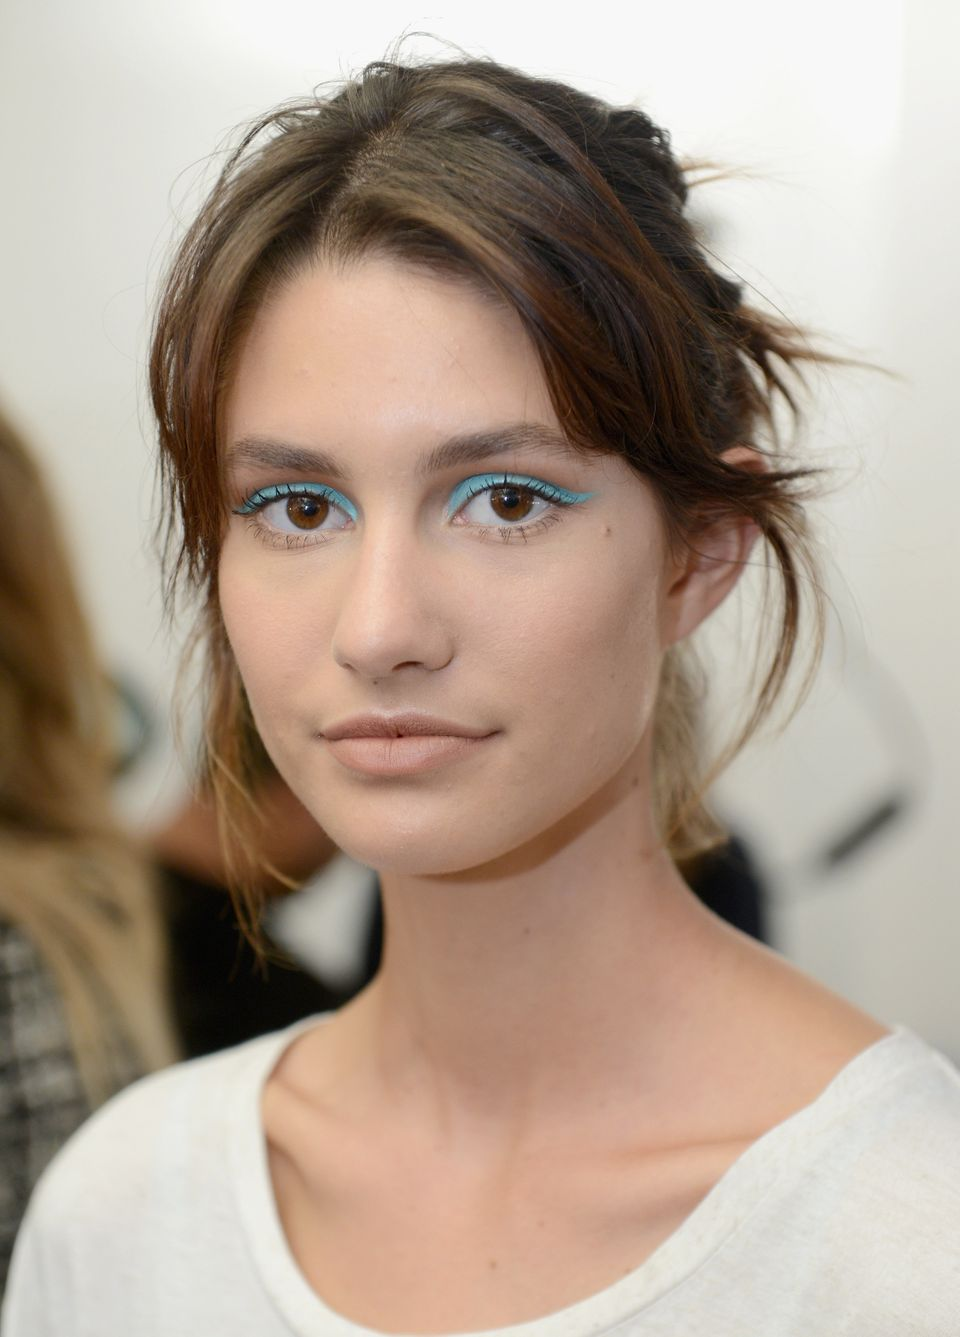 7 Looks That Prove Blue Eyeshadow Is No Longer Stuck In The 80s